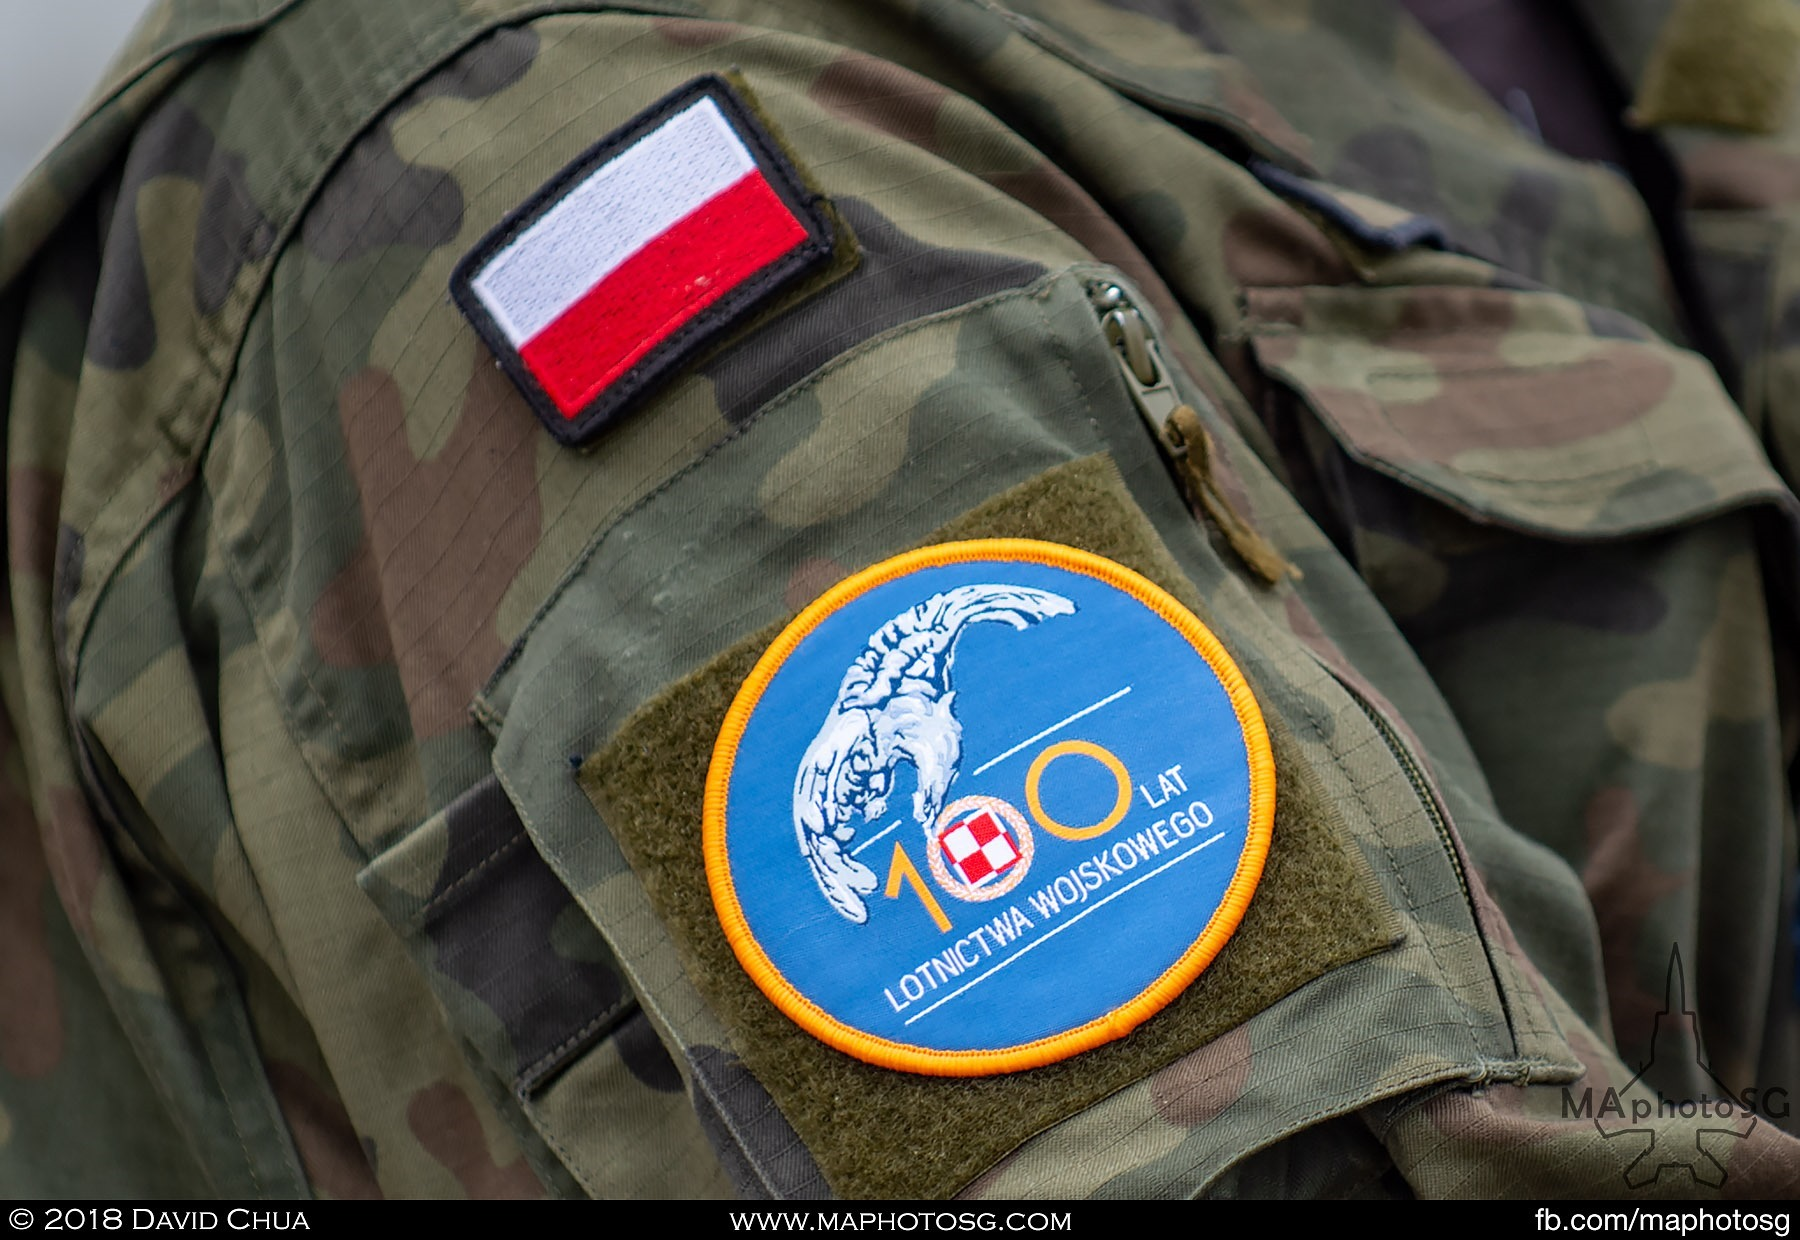 01. Polish Serviceman with the 100th Anniversary Patch celebrating the the occasion